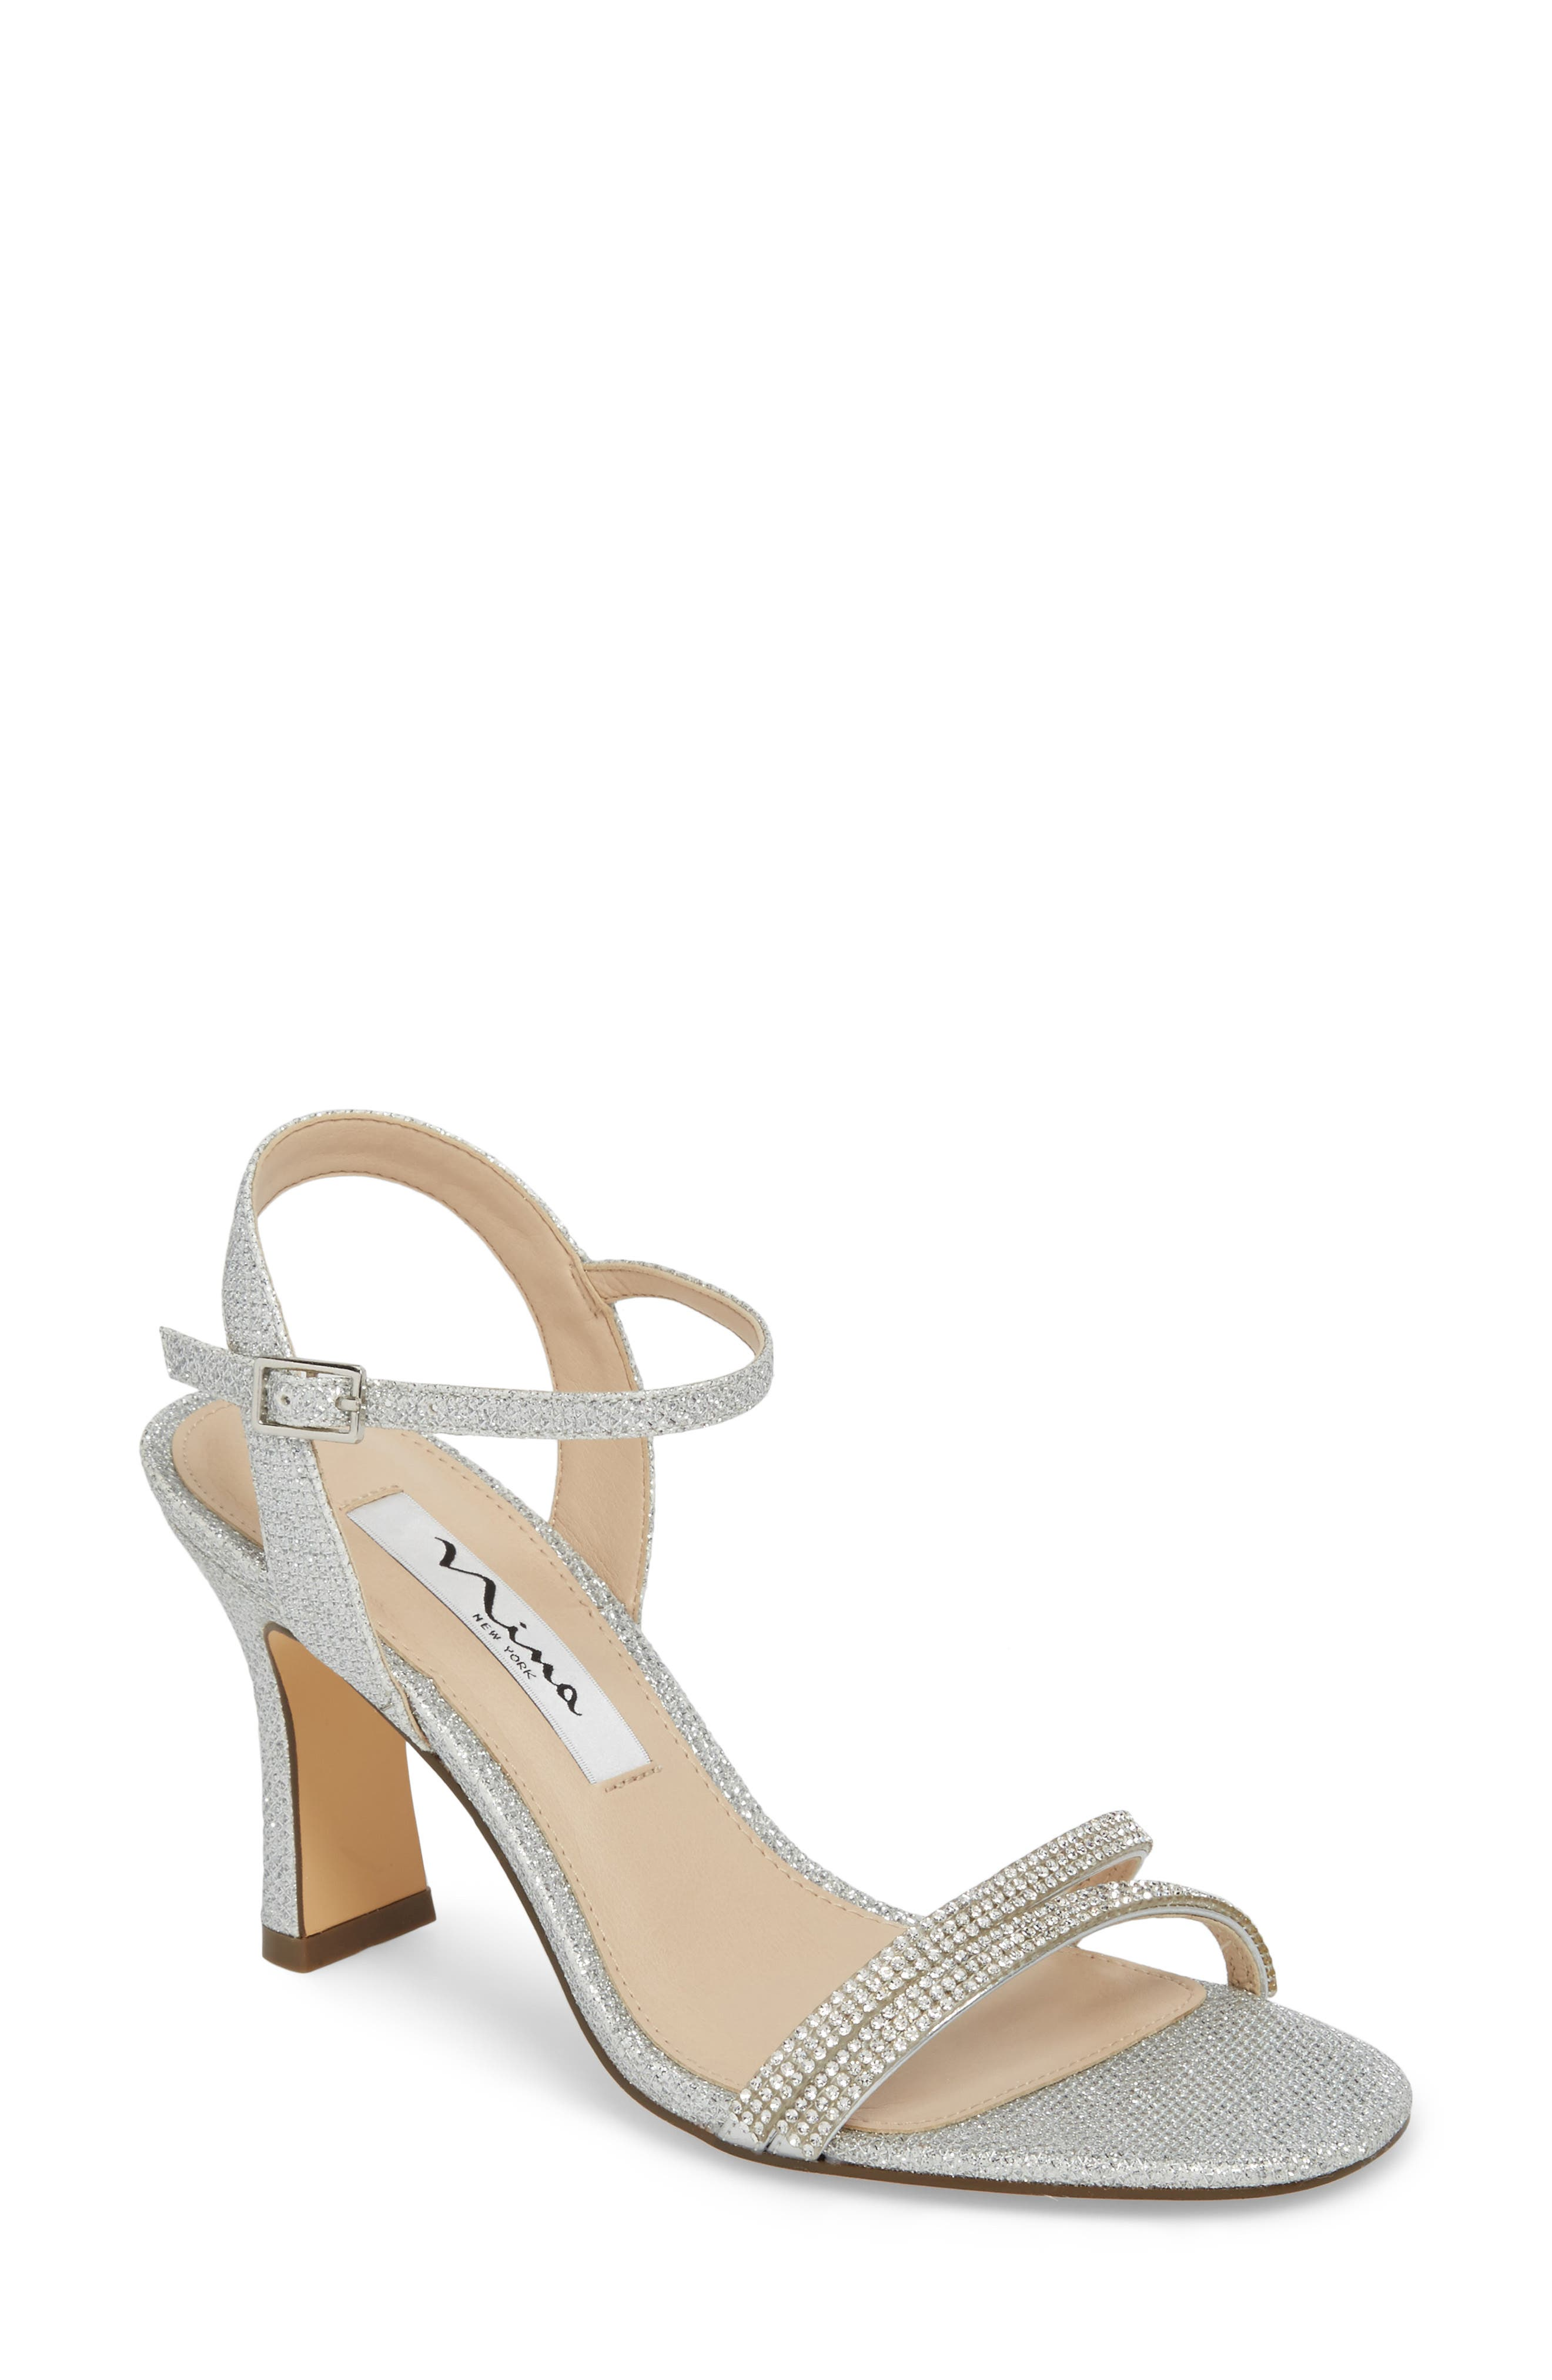 Avalon Ankle Strap Sandal,                         Main,                         color, Silver Fabric